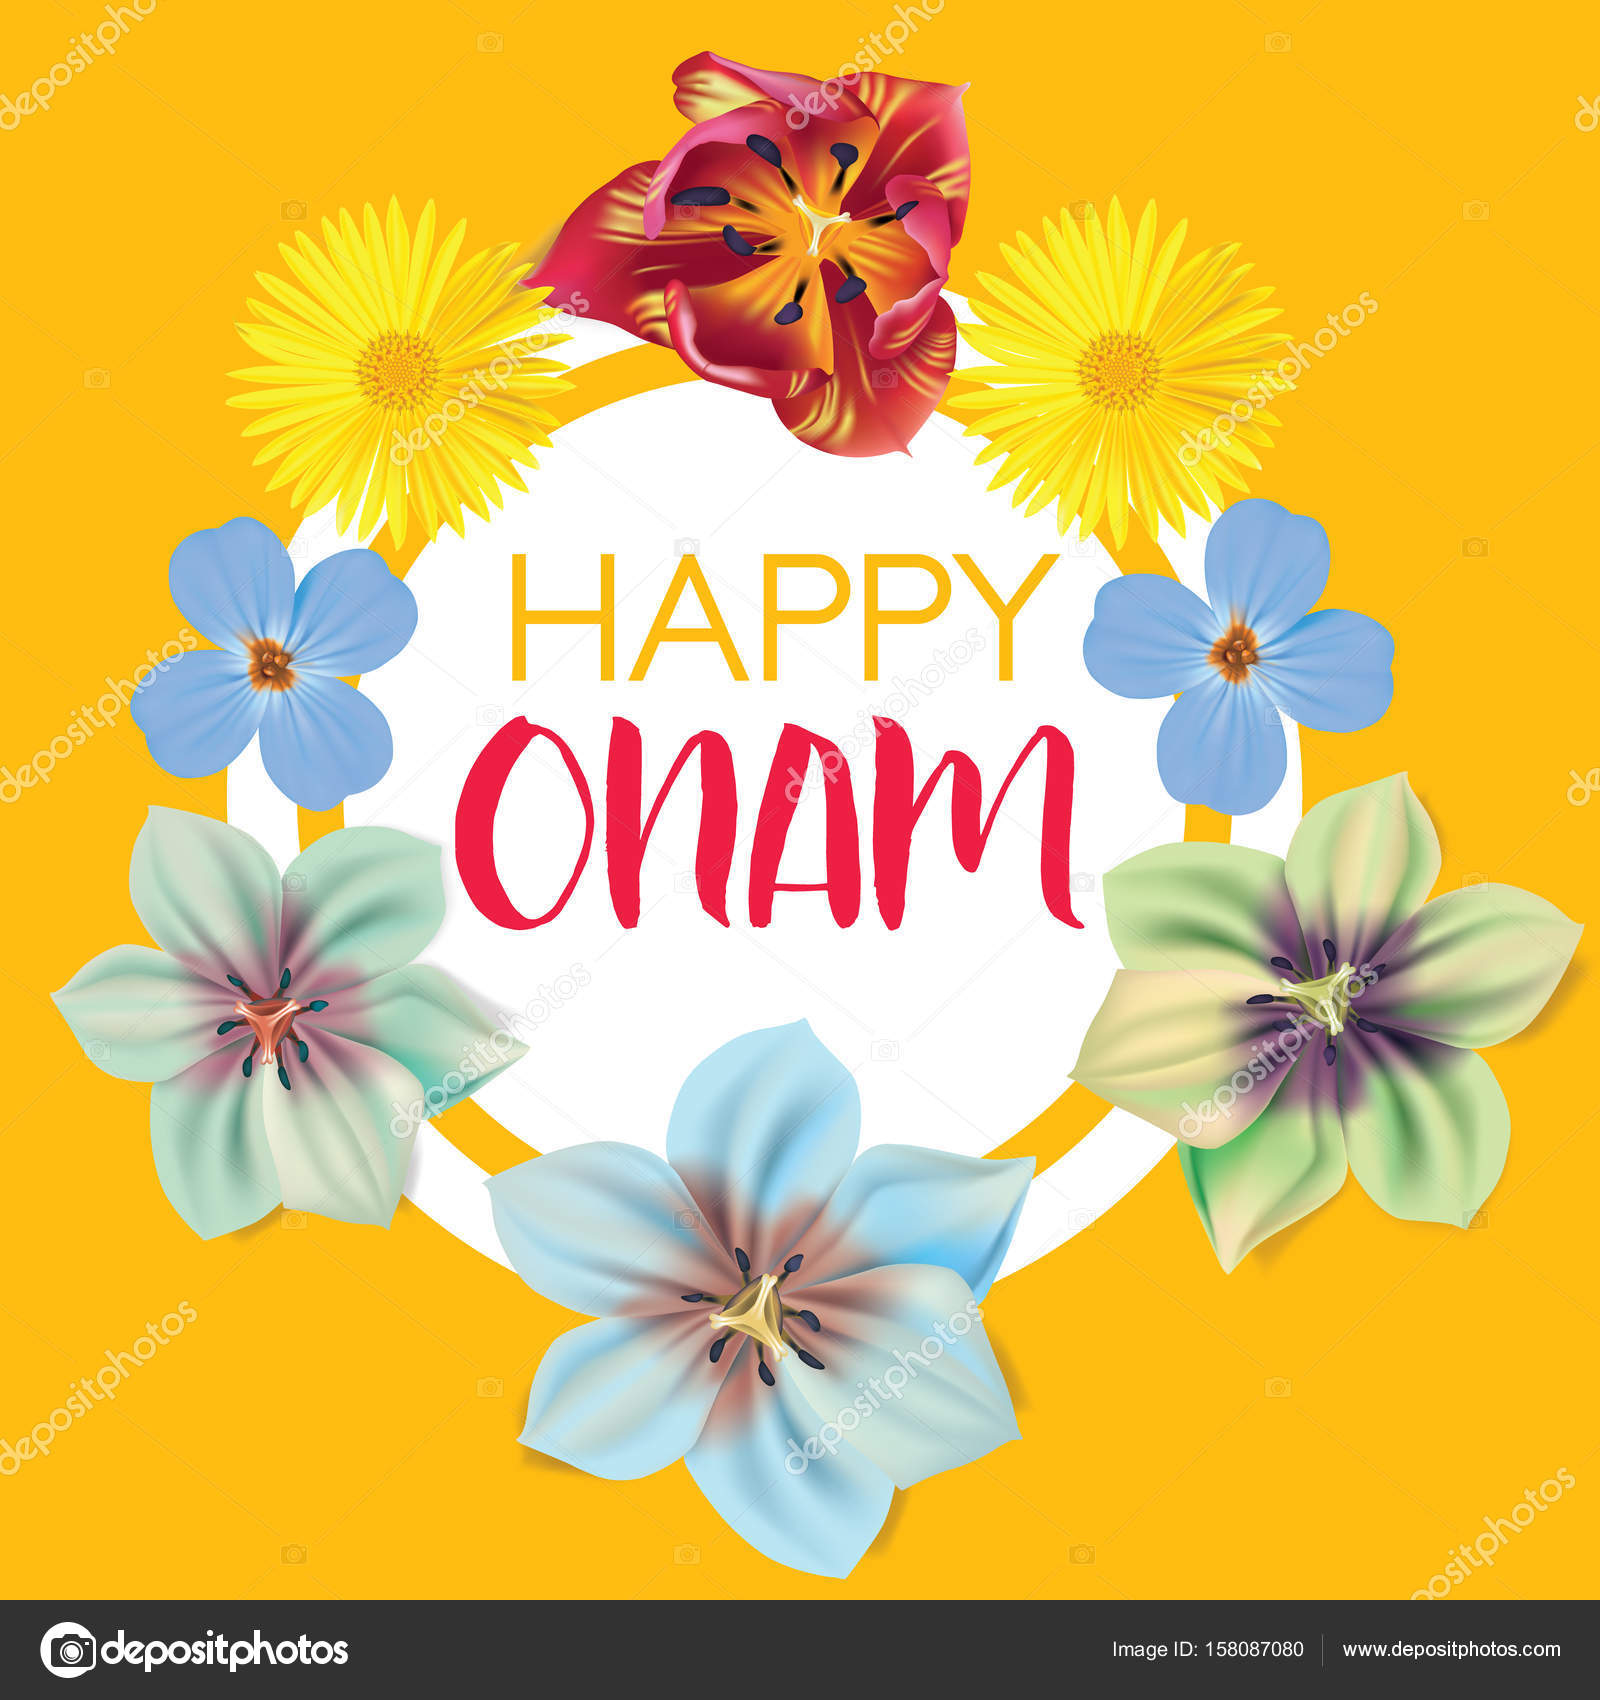 Happy onam flower greetings for south indian festival onam happy onam flower greetings for south indian festival onam vector illustration stock vector kristyandbryce Image collections